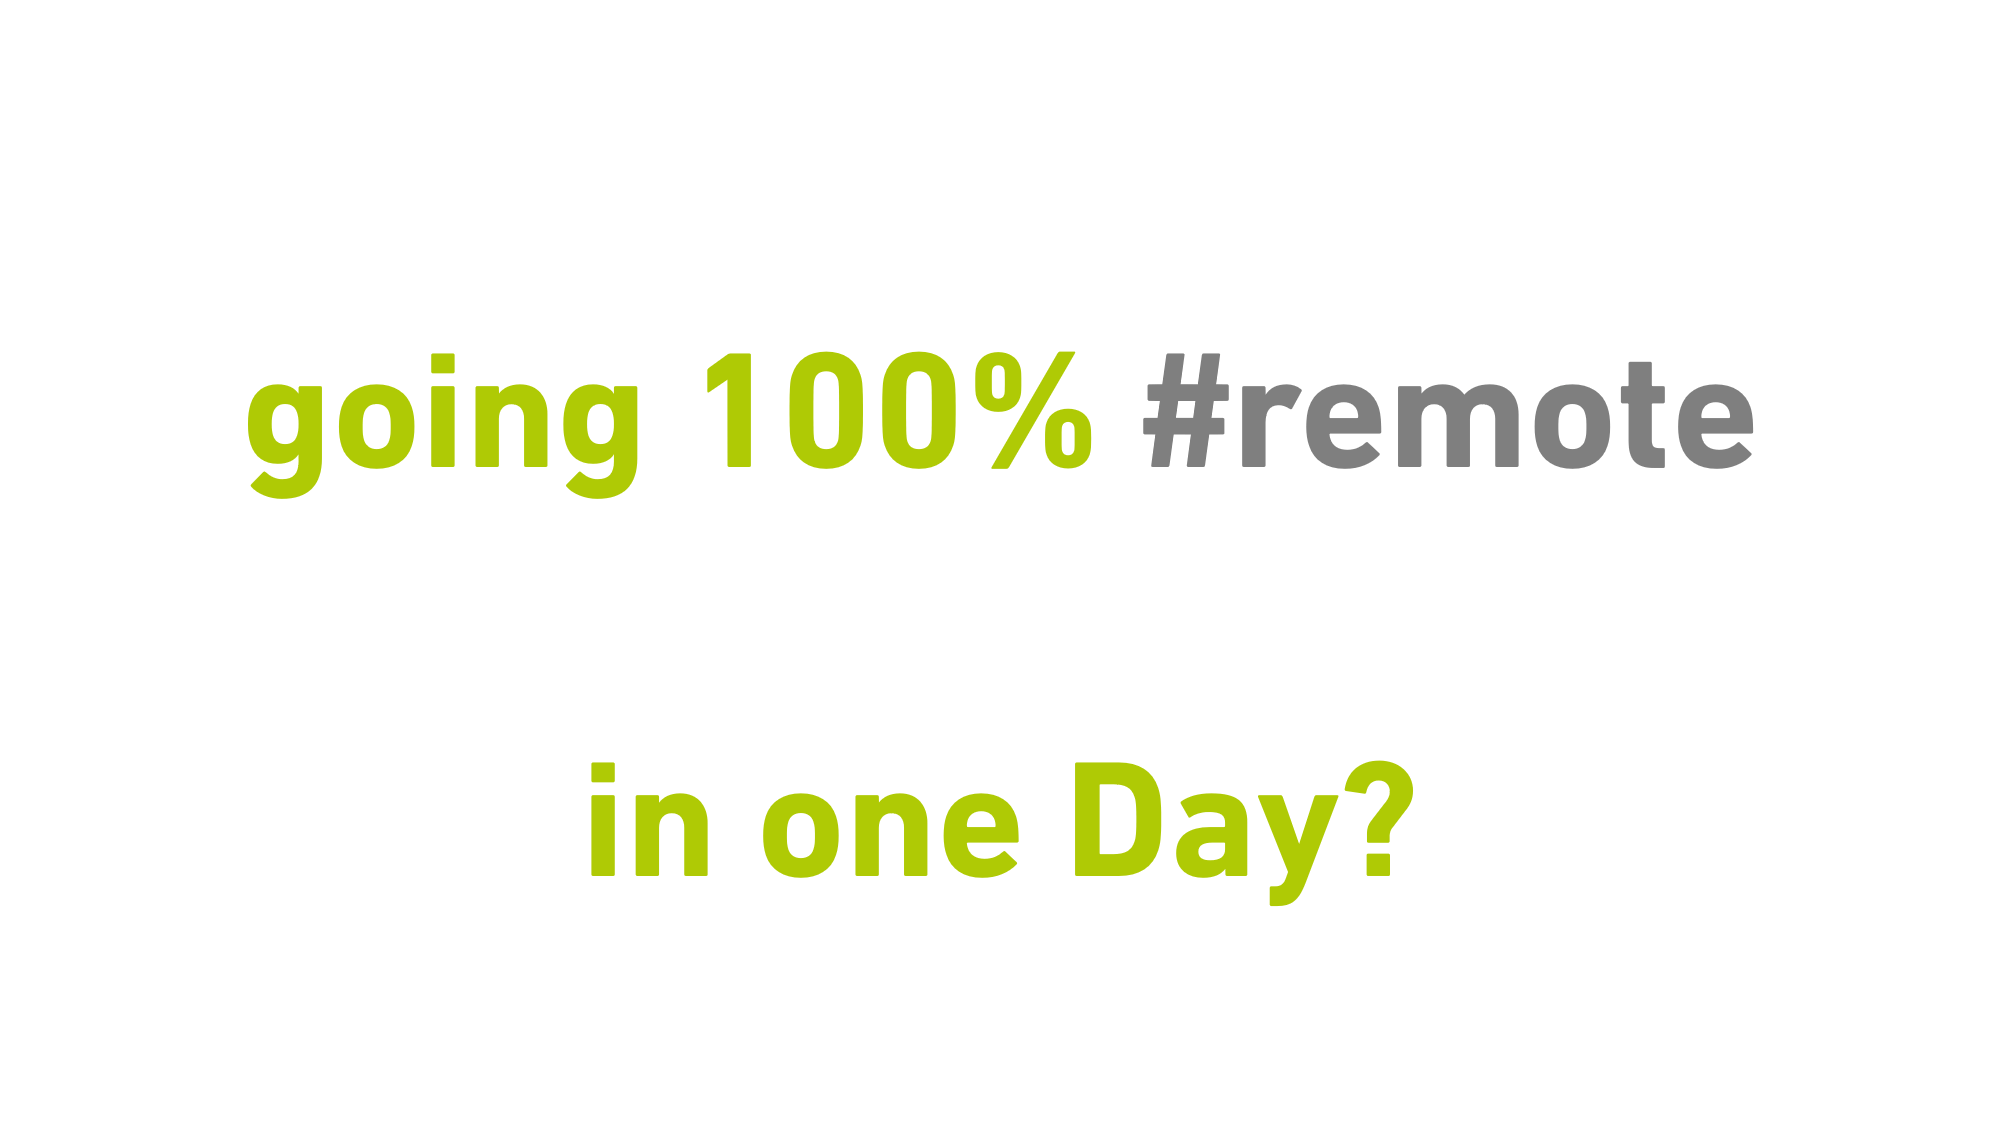 Going 100% remote in 1 Day